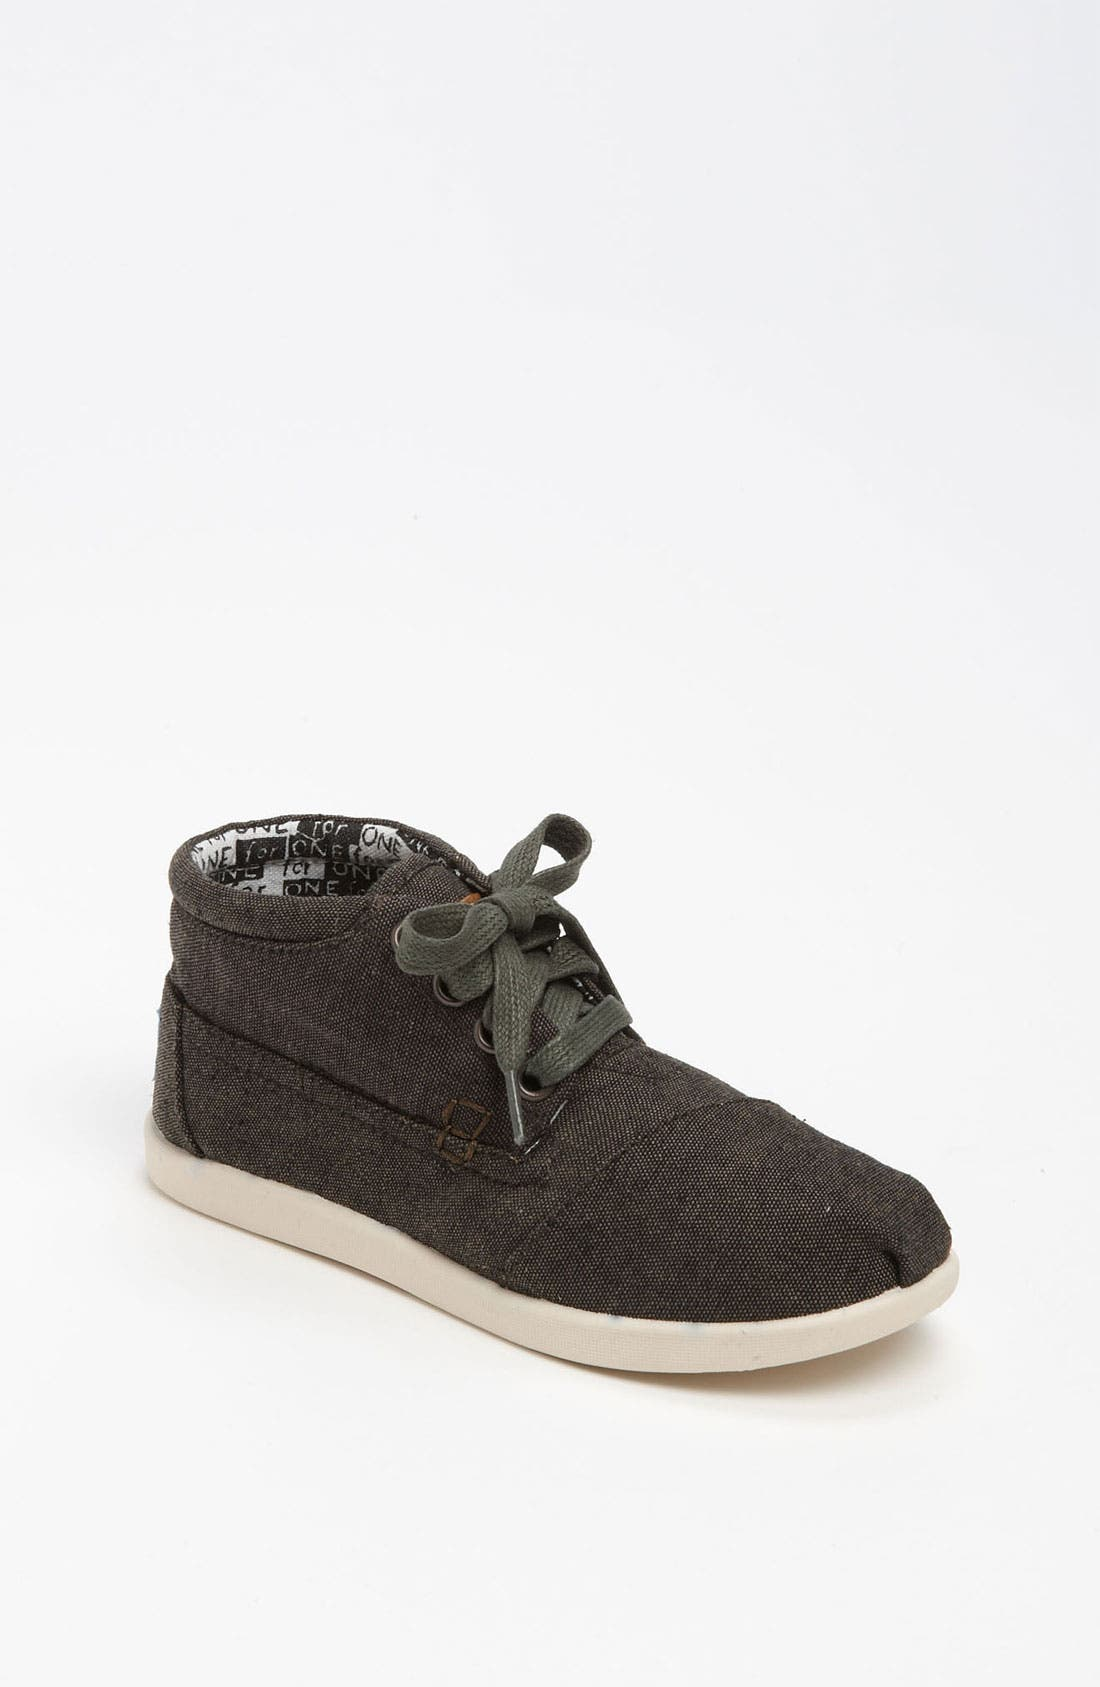 Main Image - TOMS 'Botas - Youth' Chambray Boot (Toddler, Little Kid & Big Kid)